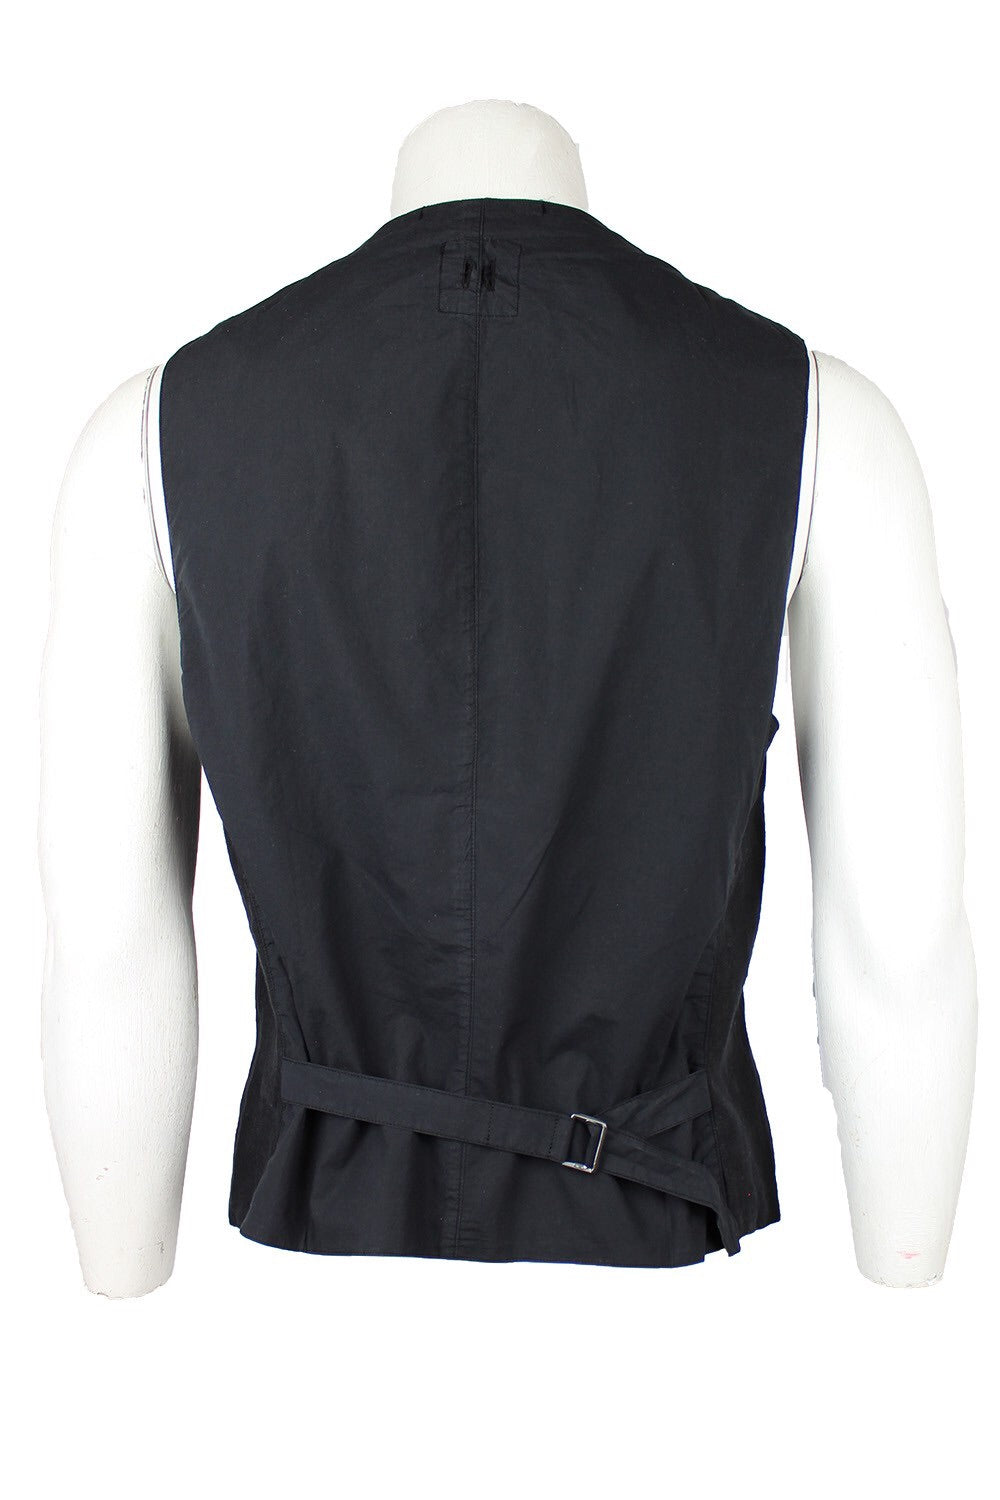 Hannes Roether Black Linen Vest - LAST SIZES